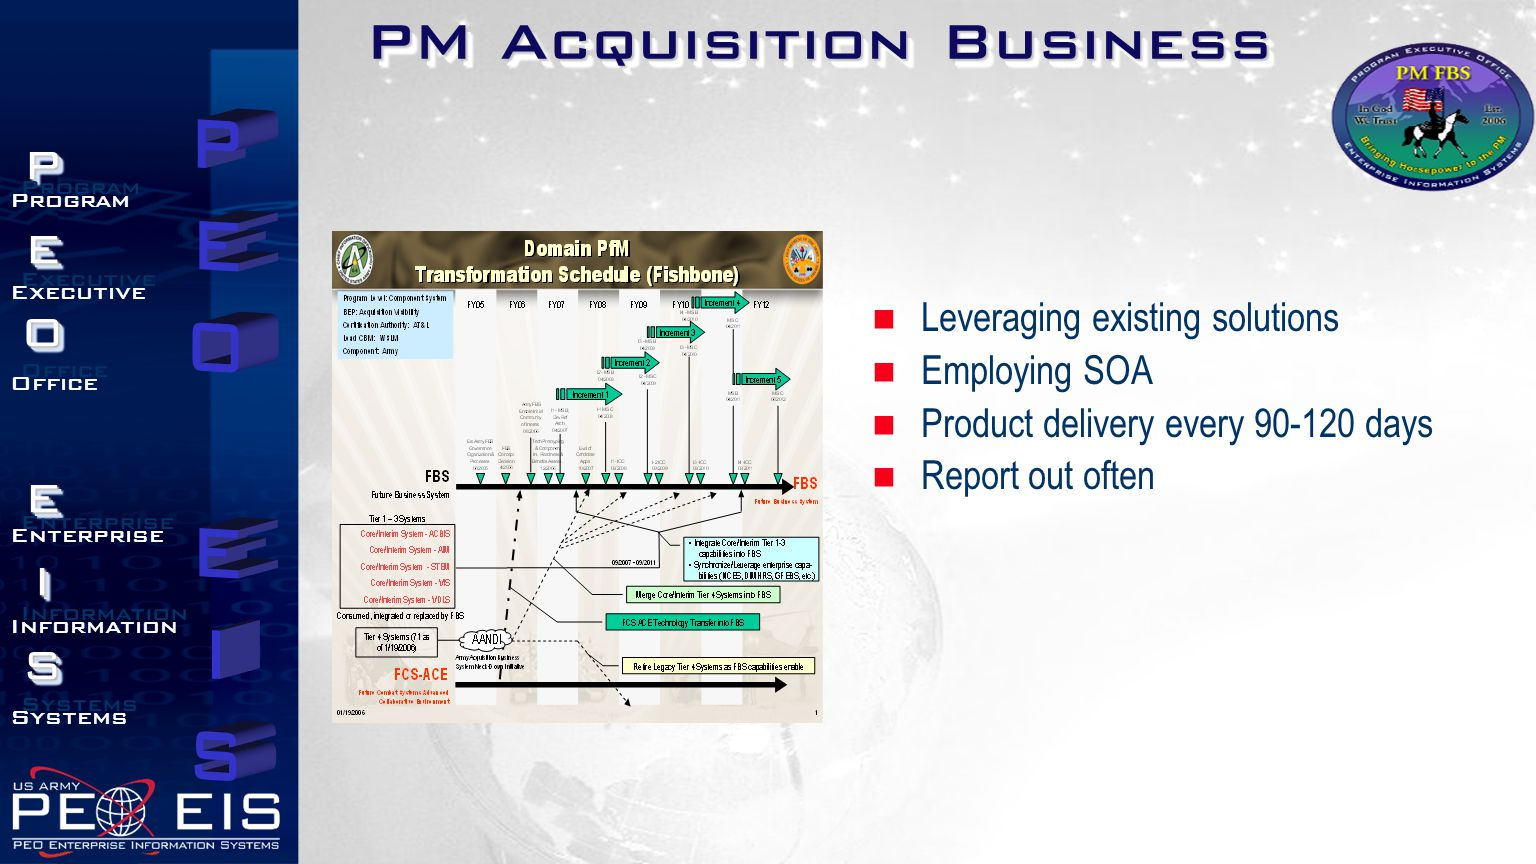 PM Acquisition Business